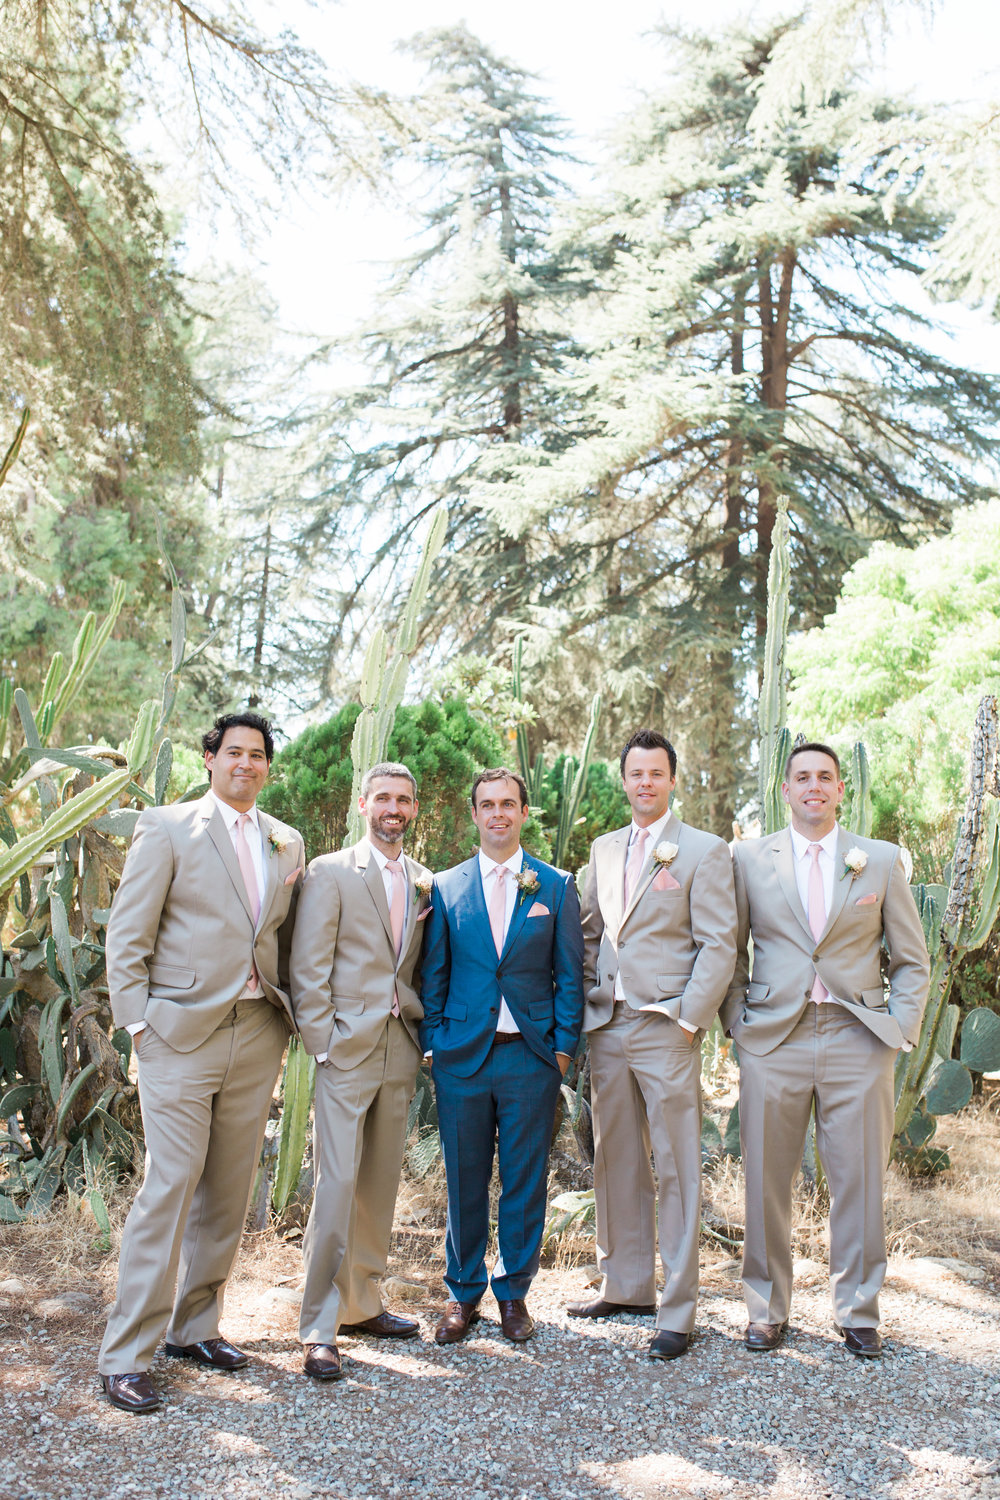 Jenny Quicksall Photography_www.jennyquicksall.com_California Wedding Photographer_Highland Springs Ranch and Inn Resort_Cherry Valley California (8).JPG